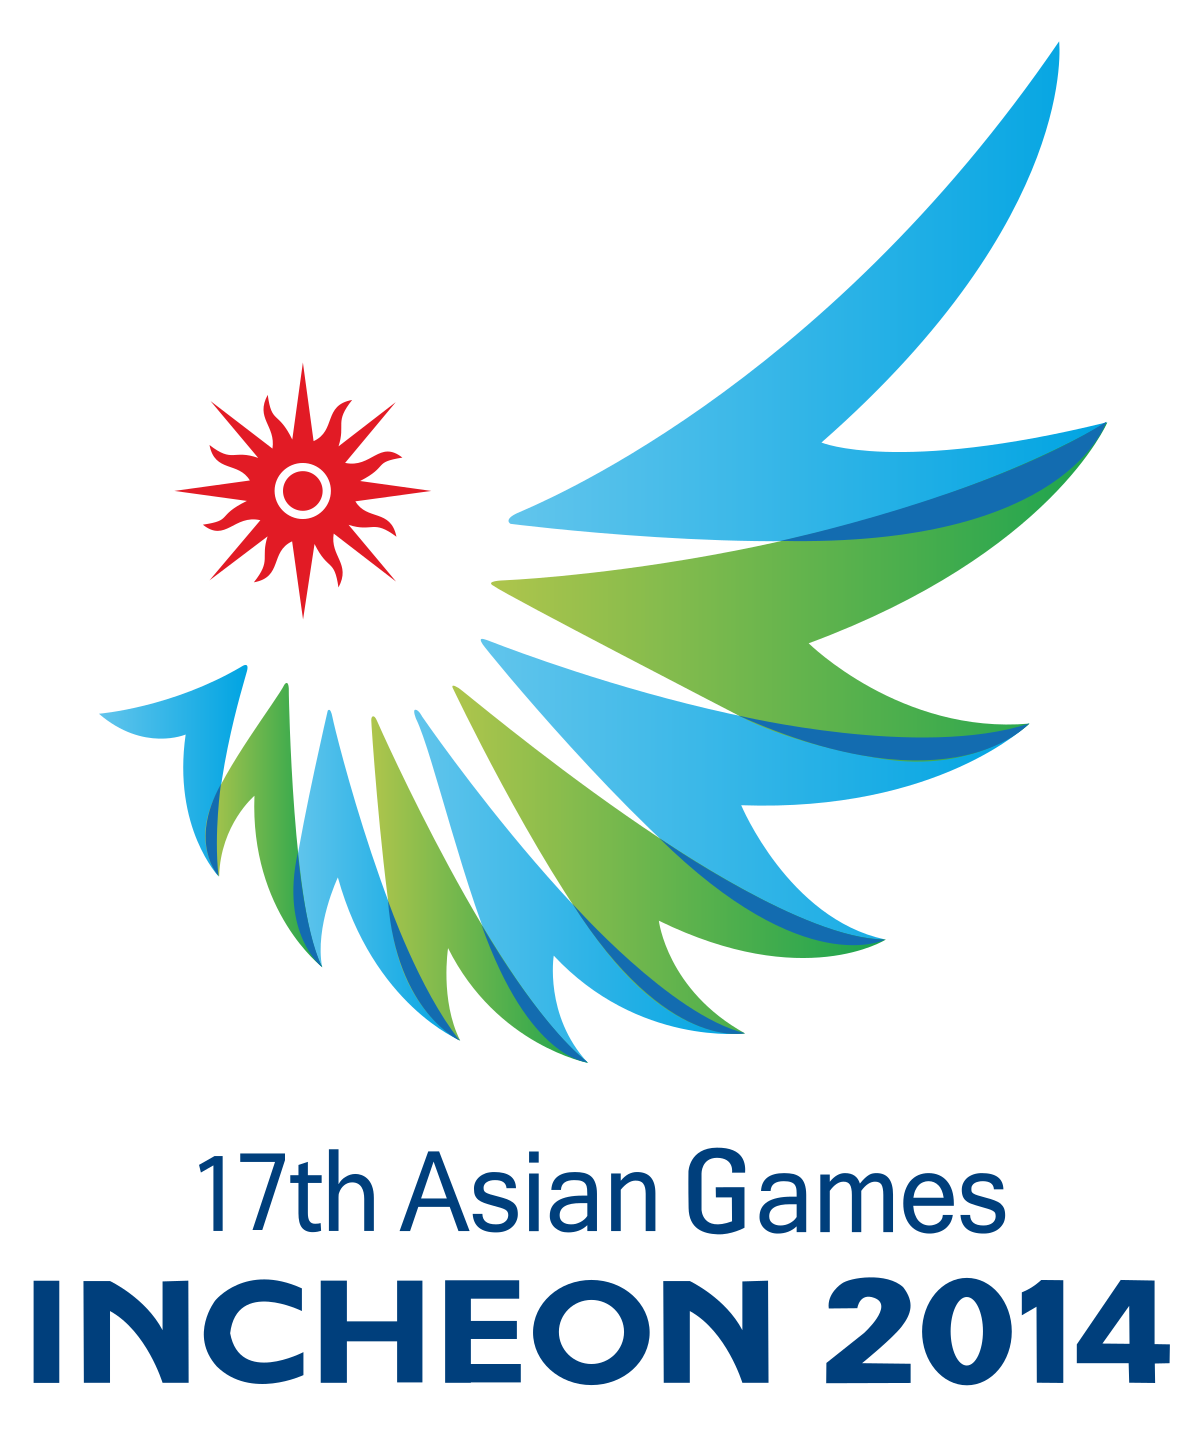 Incheon 2014